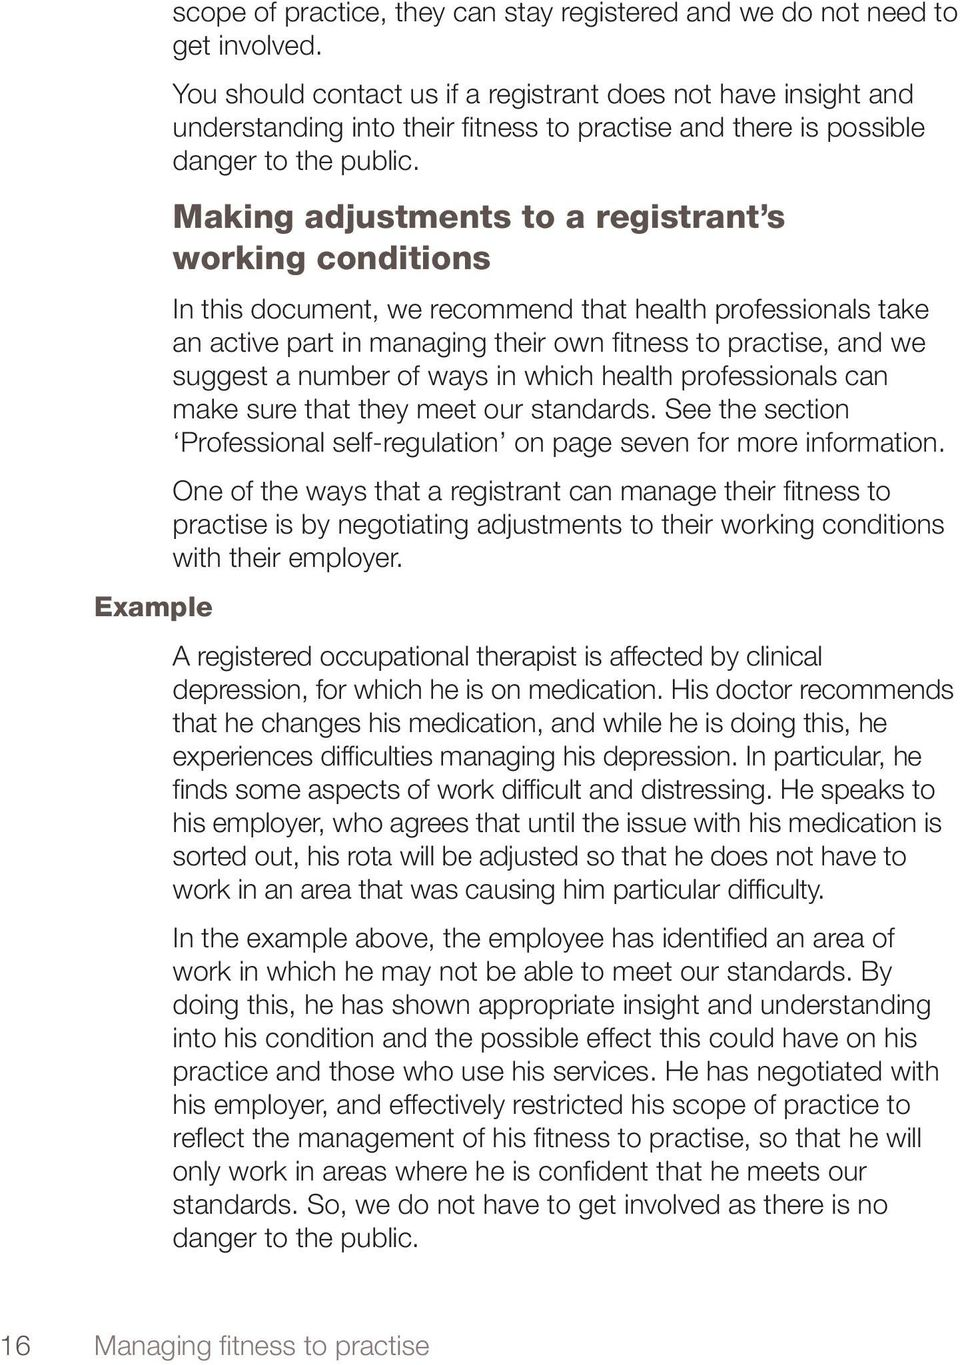 Making adjustments to a registrant s working conditions In this document, we recommend that health professionals take an active part in managing their own fitness to practise, and we suggest a number